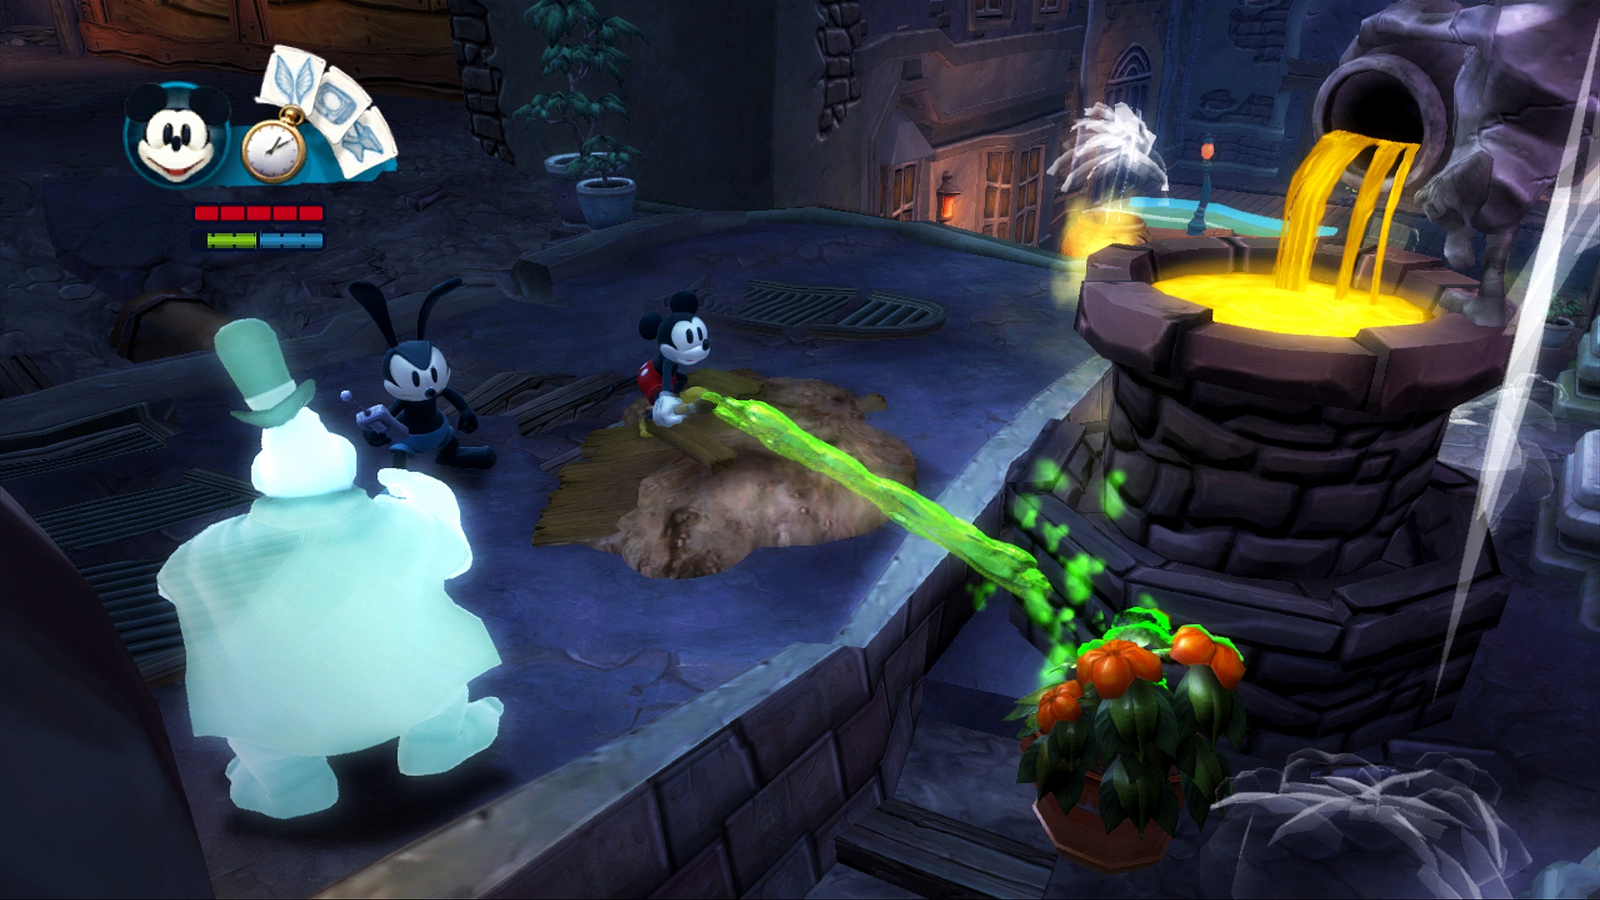 disney-epic-mickey-2-the-power-of-two-05